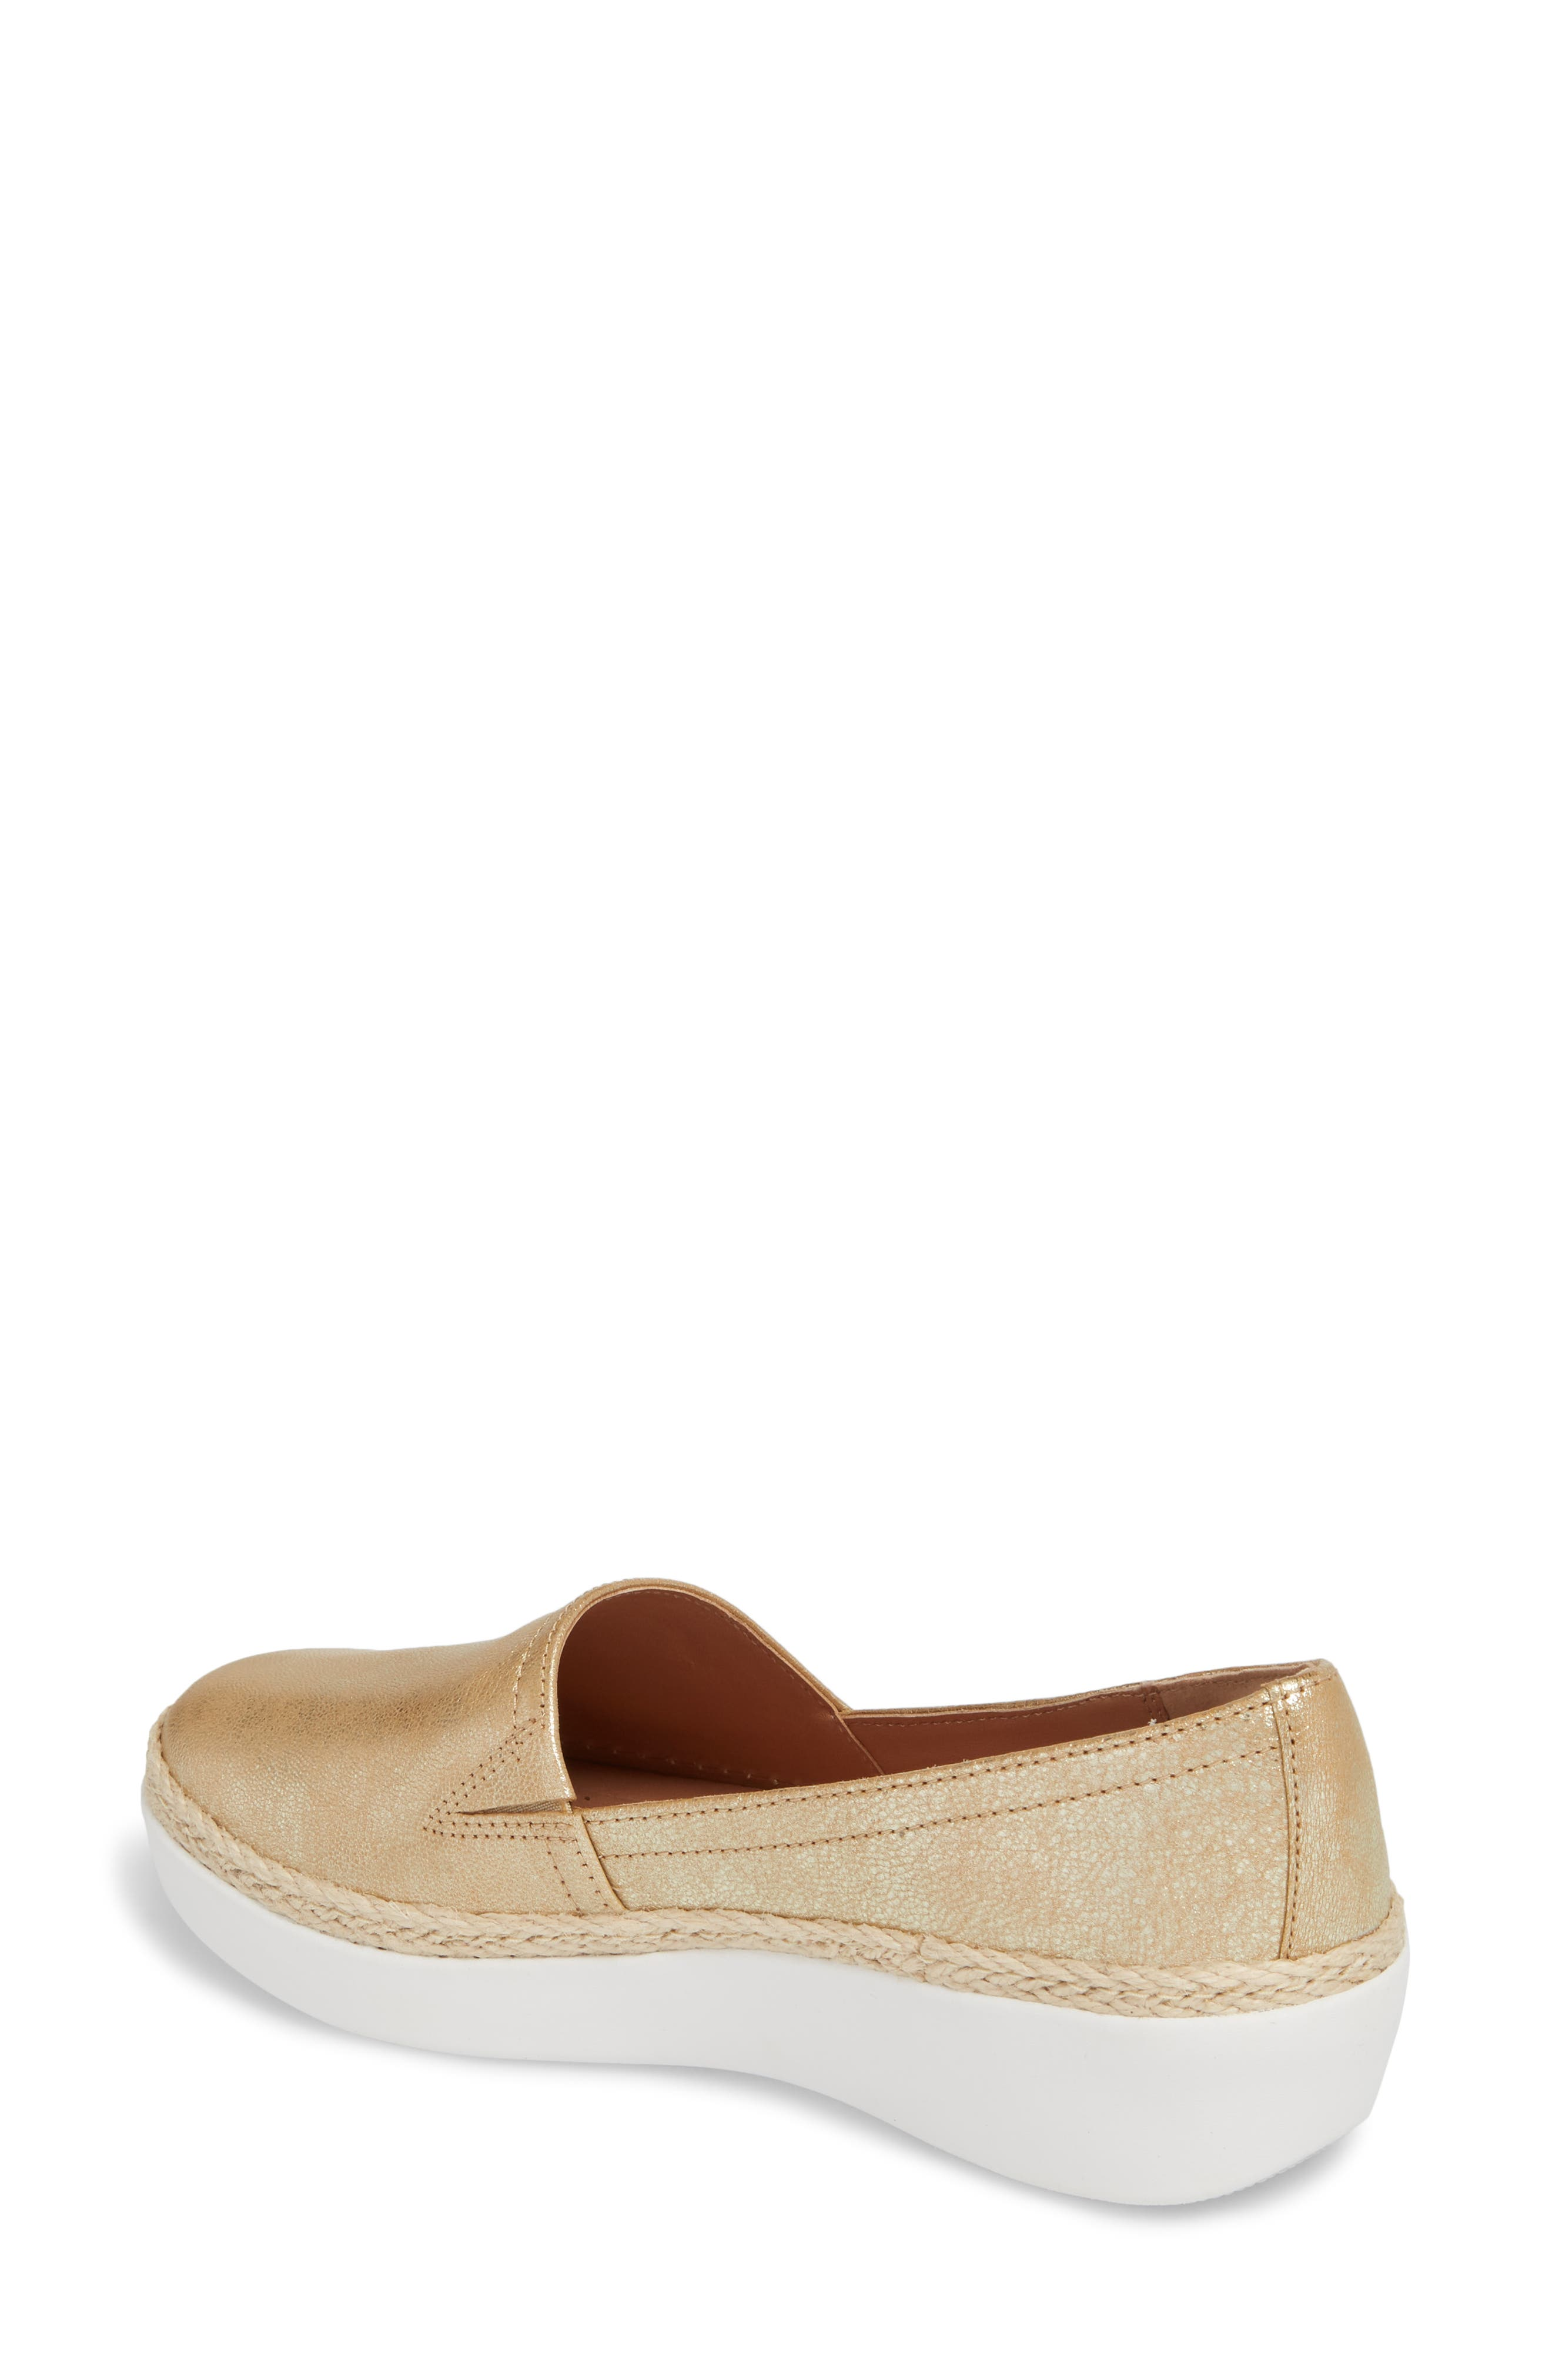 Casa Loafer,                             Alternate thumbnail 2, color,                             Metallic Gold Leather